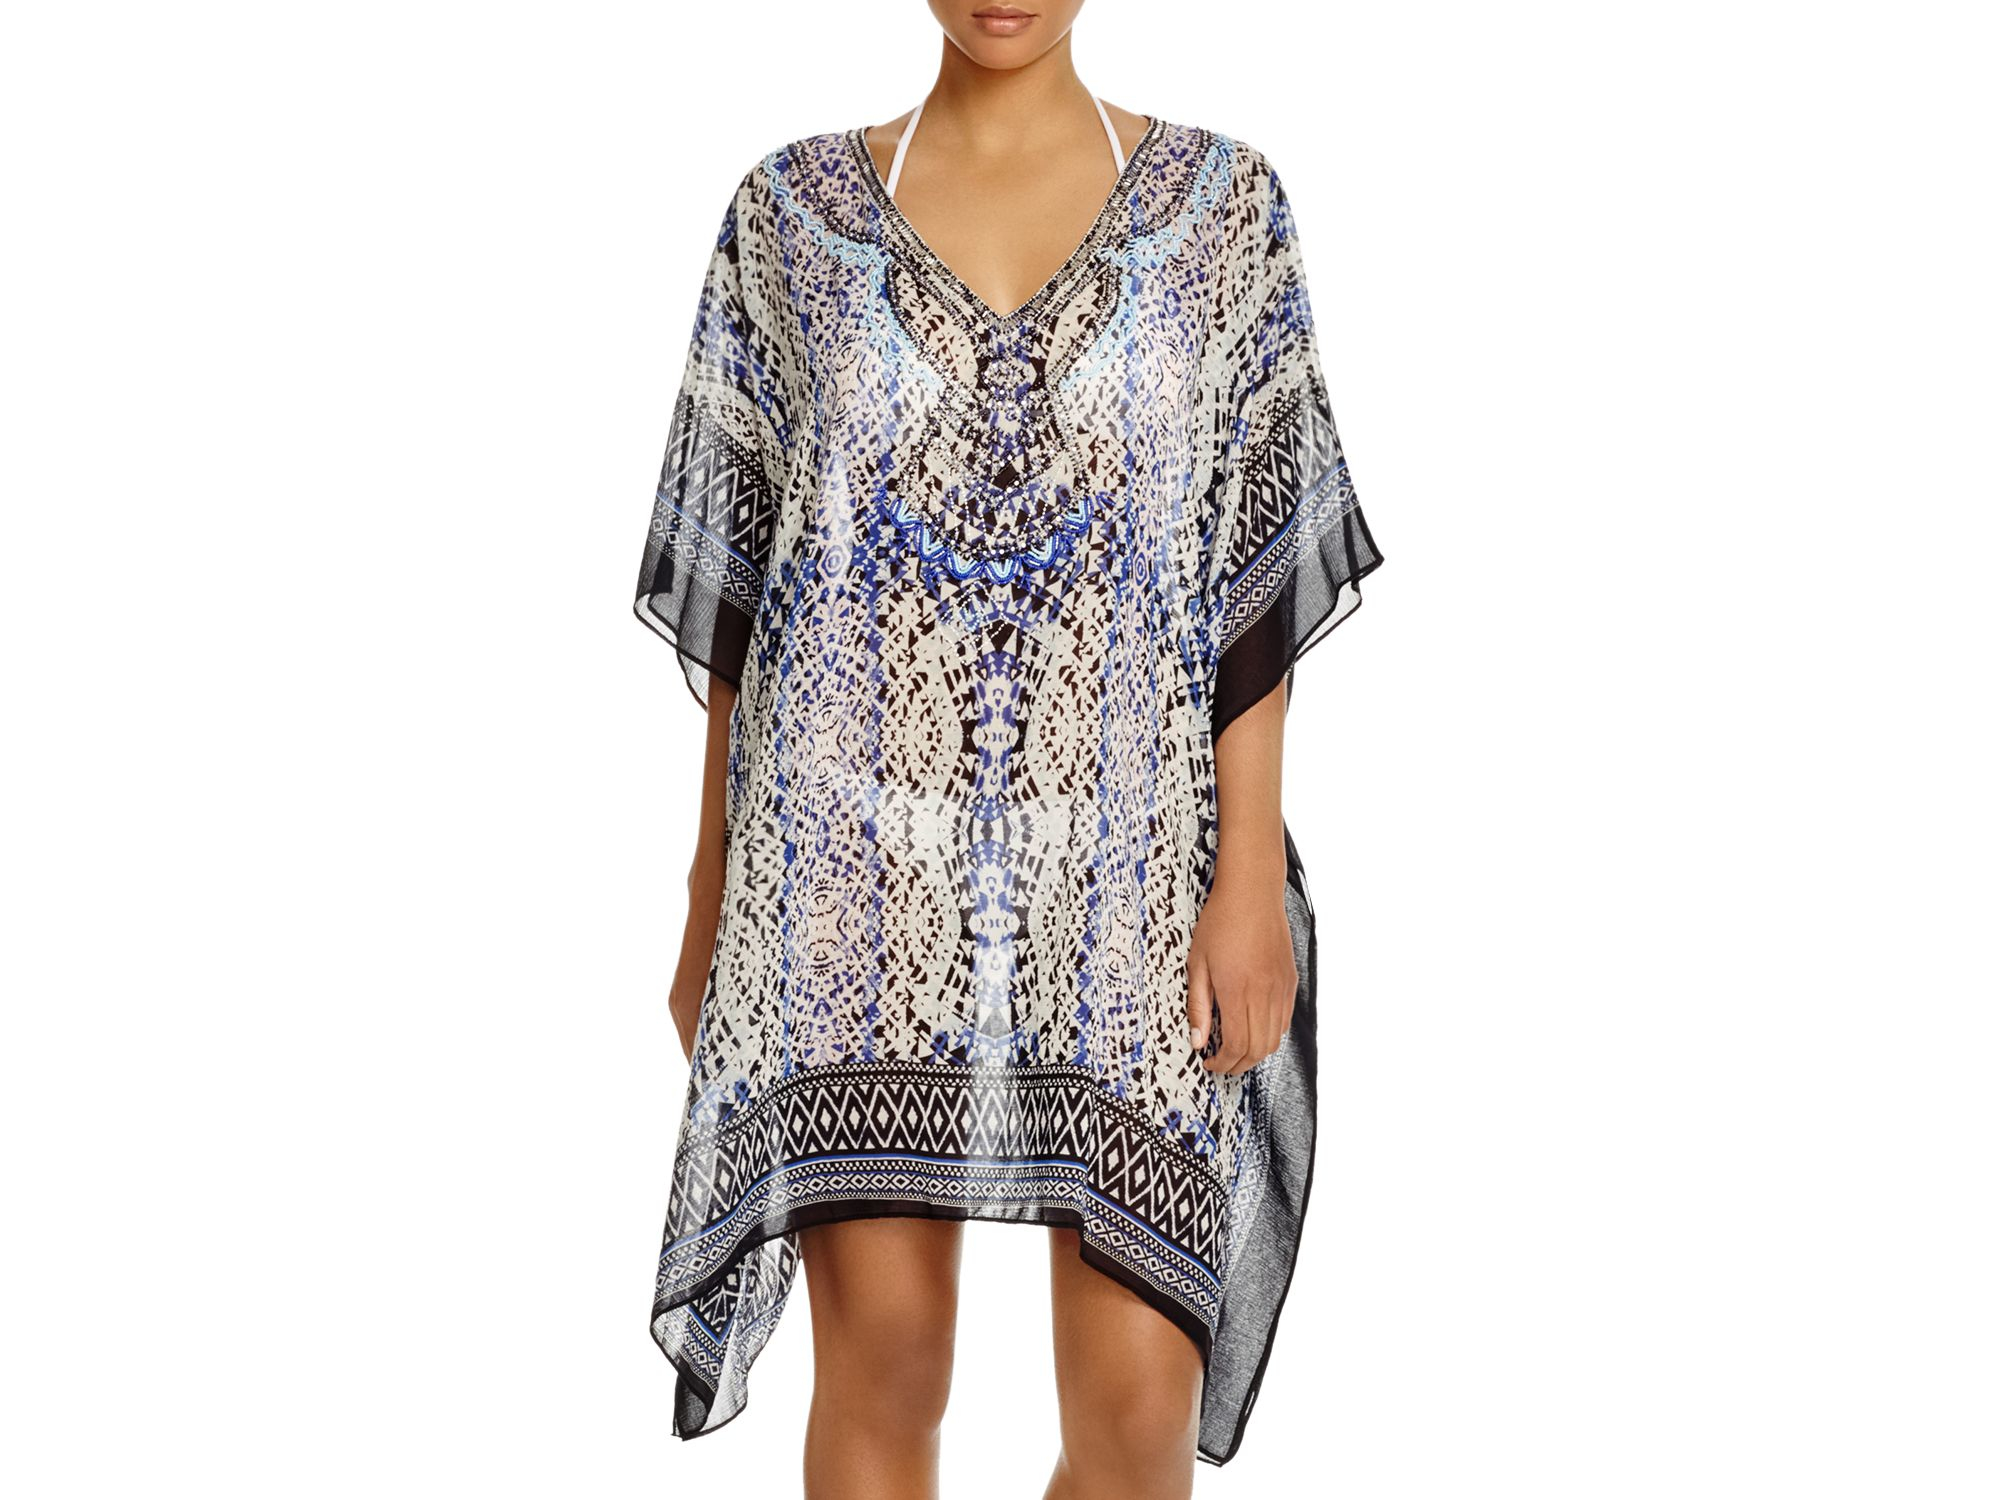 aa9f011aec Parker Beach Playa Tunic Swim Cover Up in Blue - Lyst